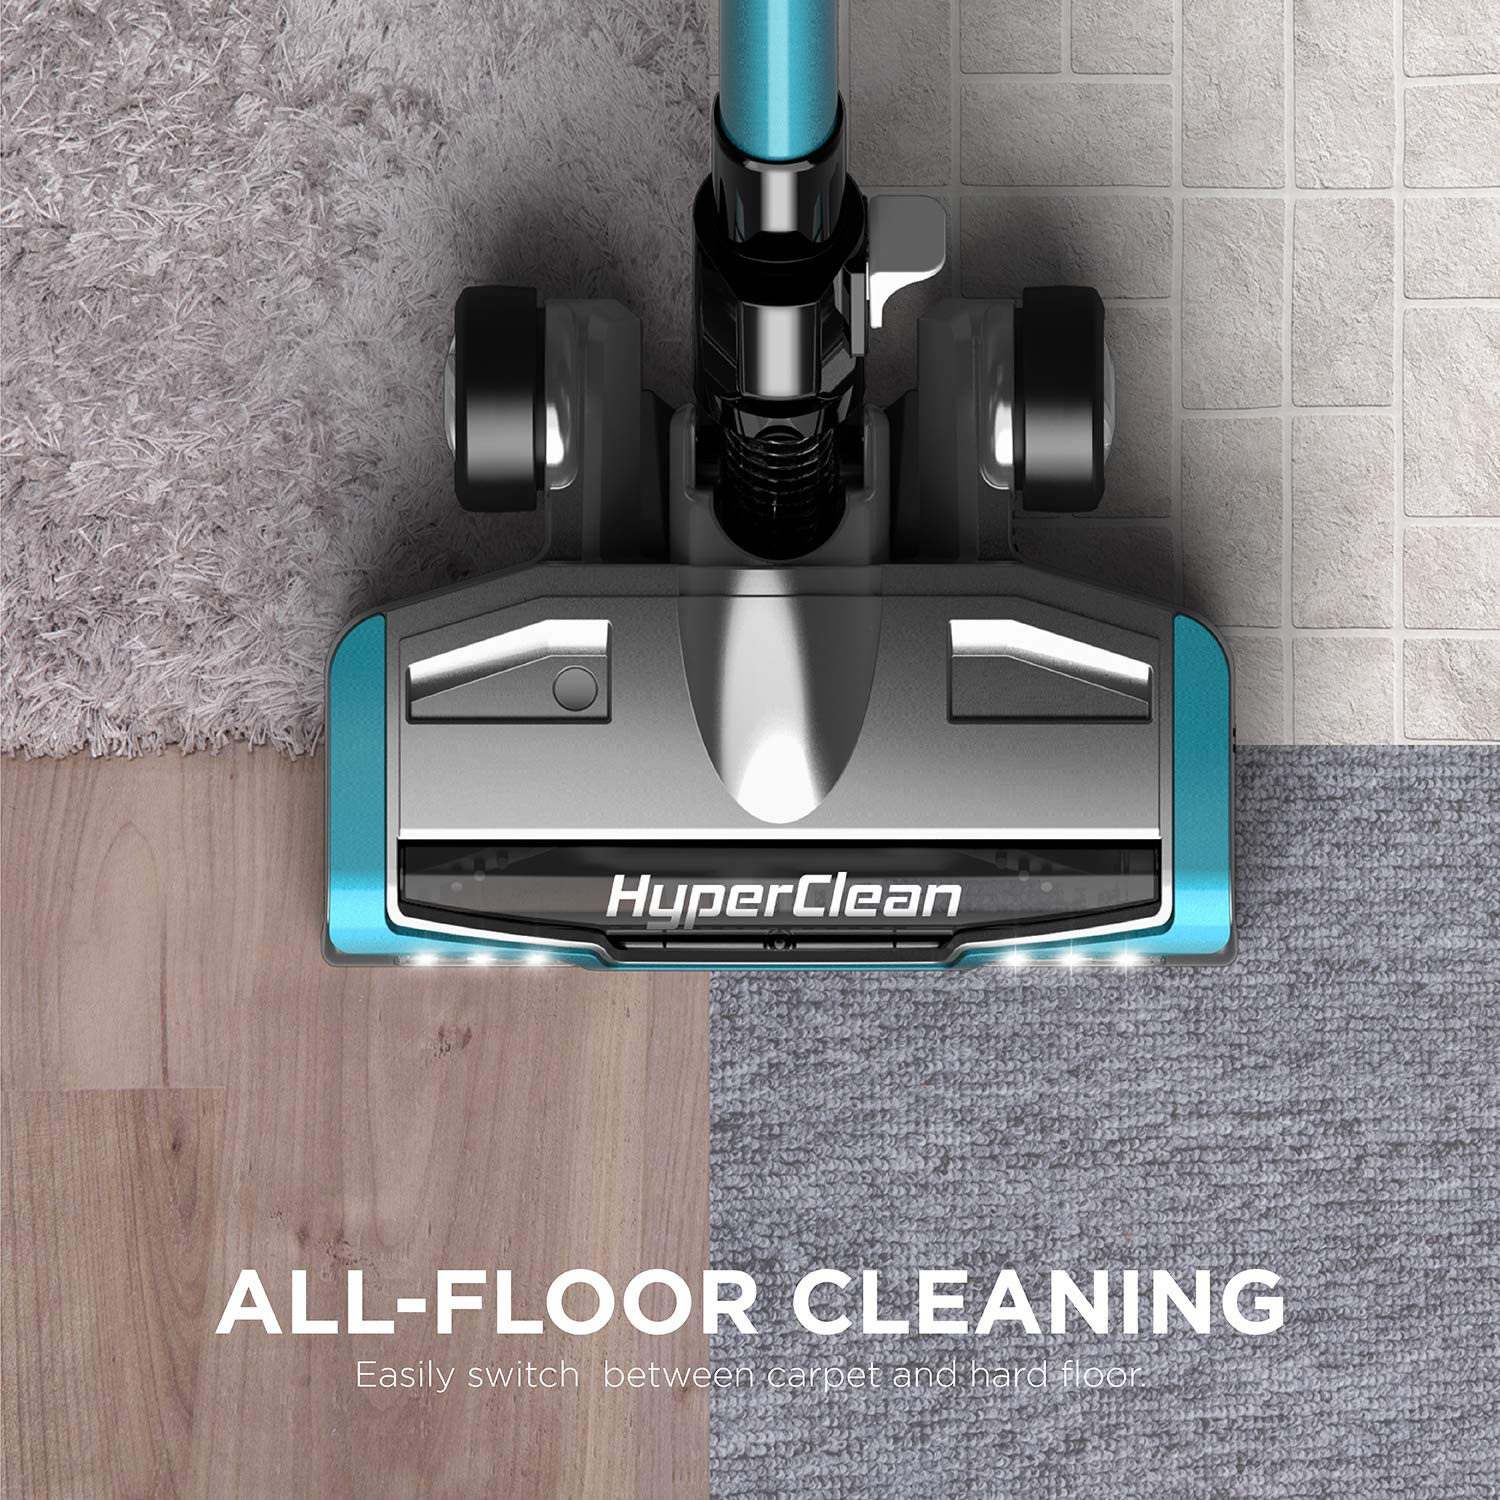 EUREKA NEC222 HyperClean Cleaner, Super for All Carpet and Hardwood floor Stick Powerful Digital Motor, Vacuum Cordless